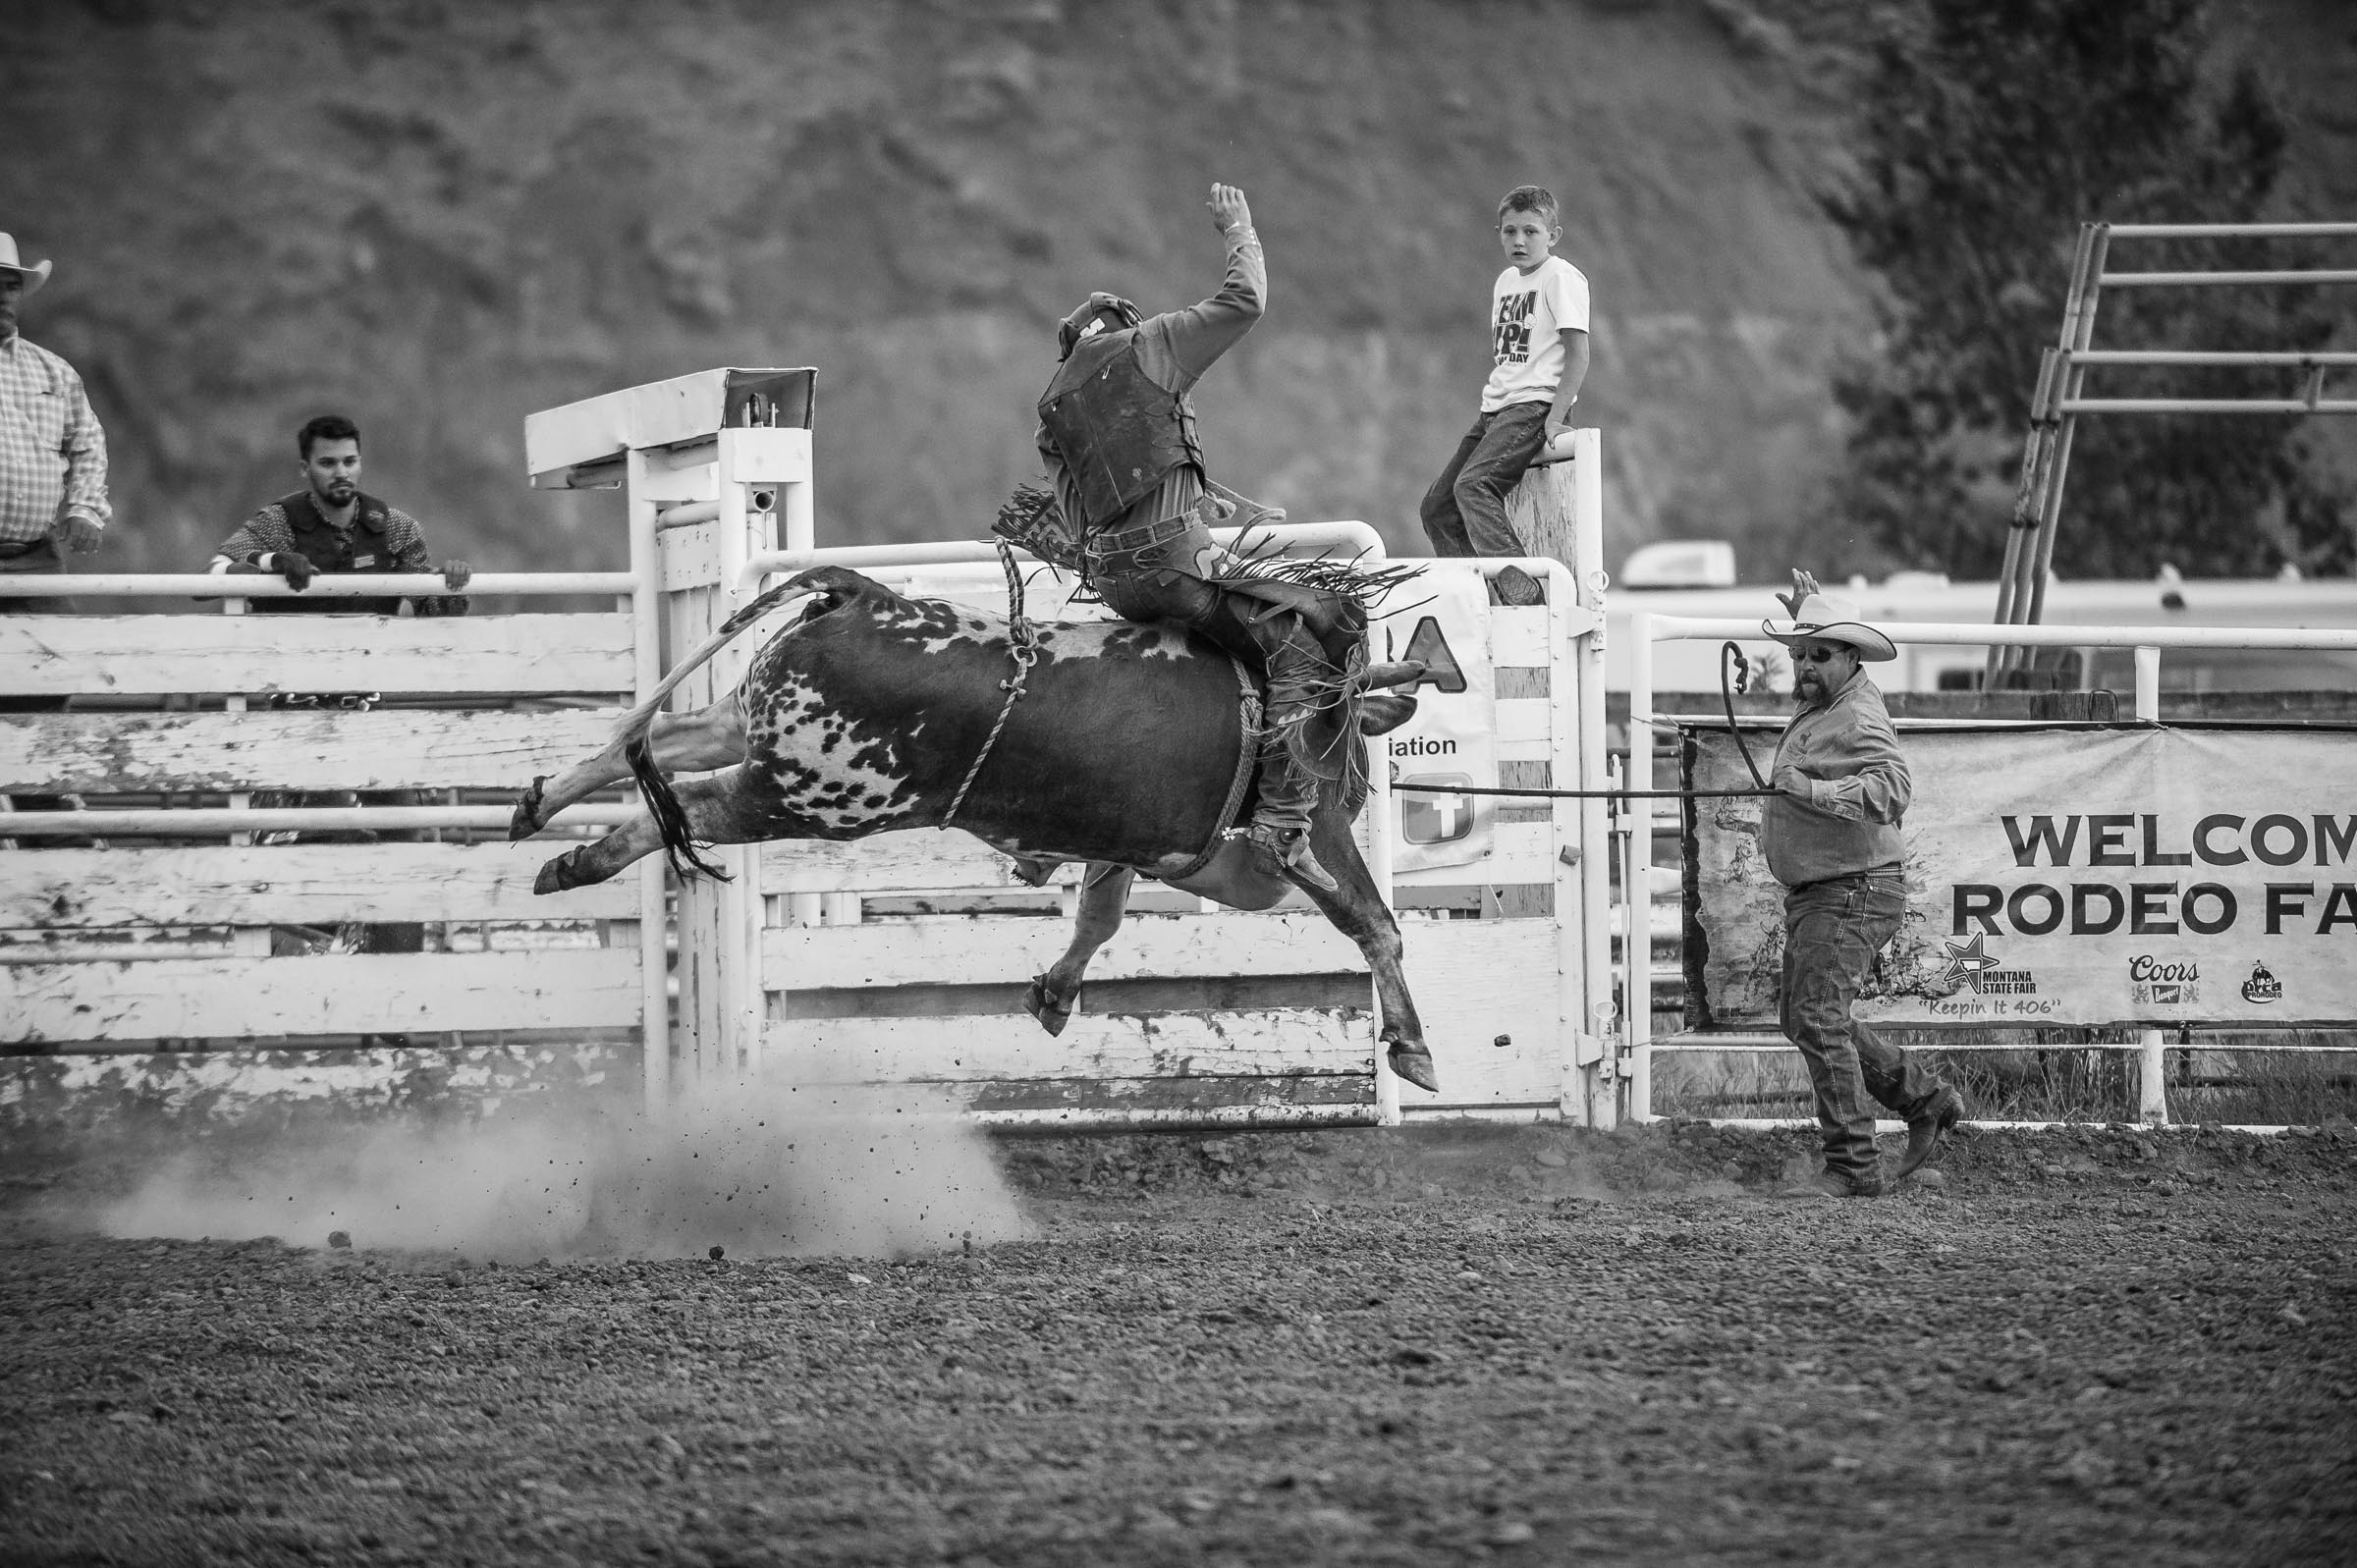 rodeo_whisky-bent_bynum-2631.JPG